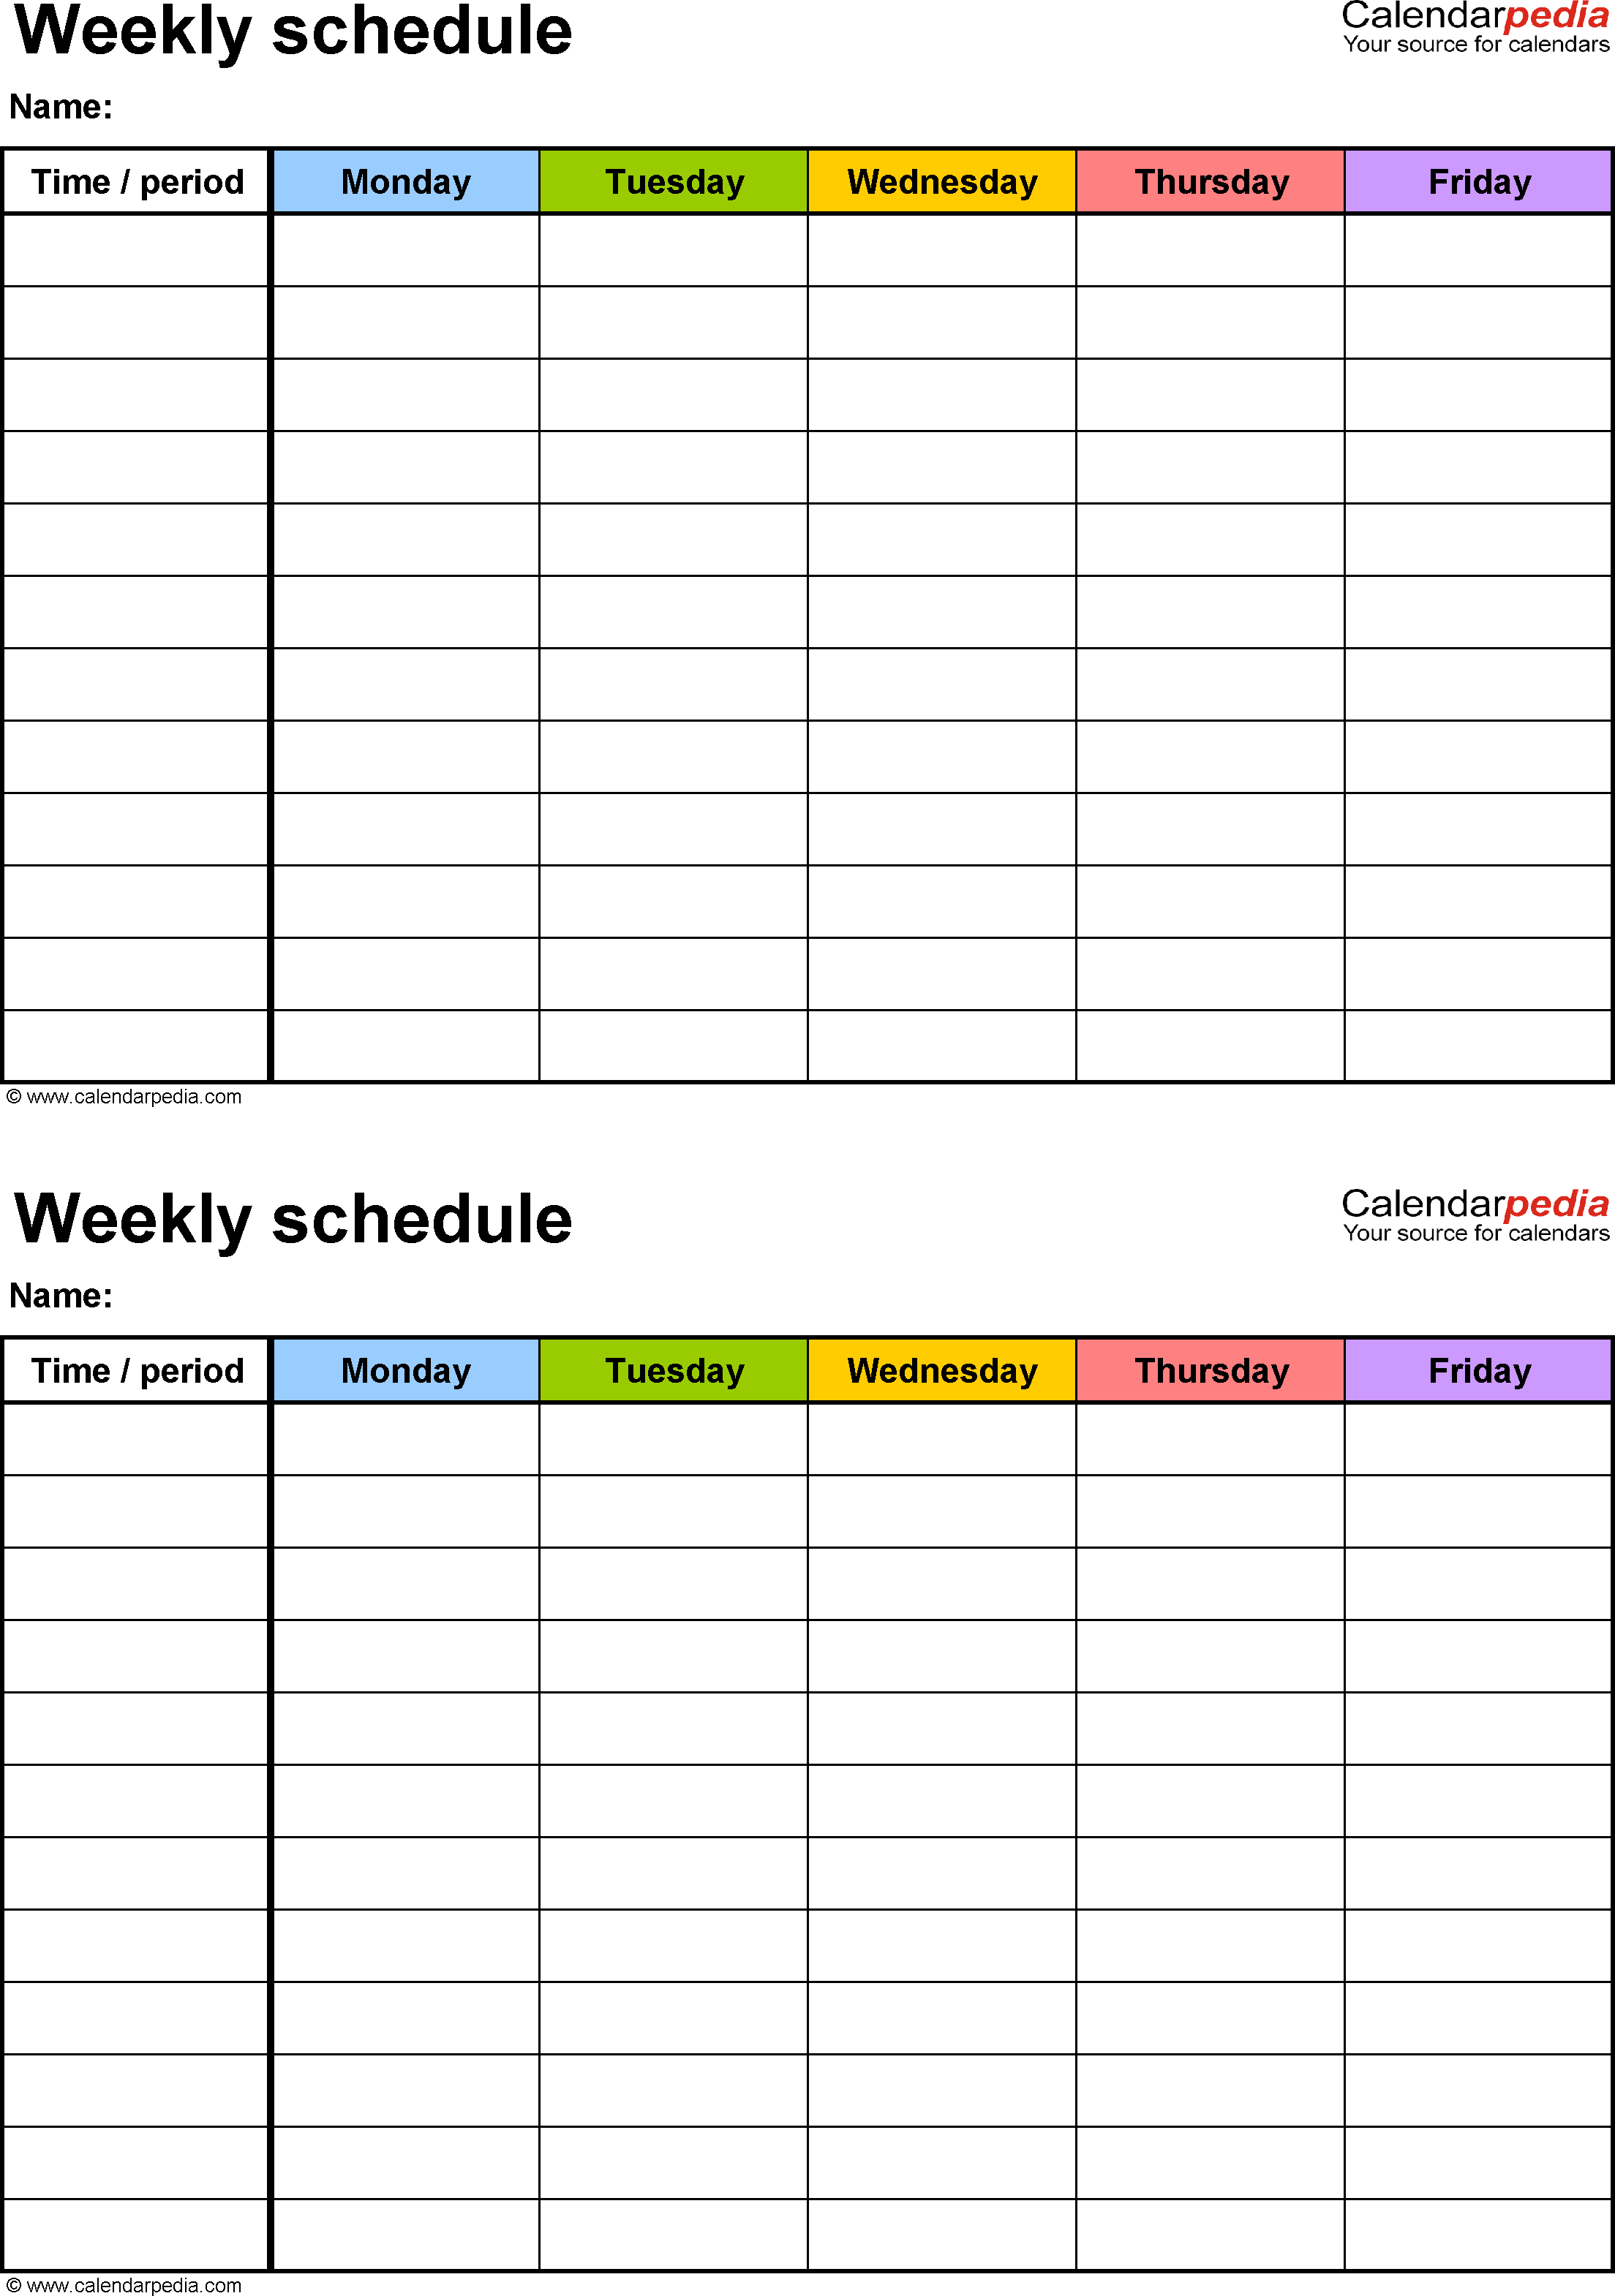 weekly schedule template for excel version 3 2 schedules on one page portrait monday to friday 5 day week in color